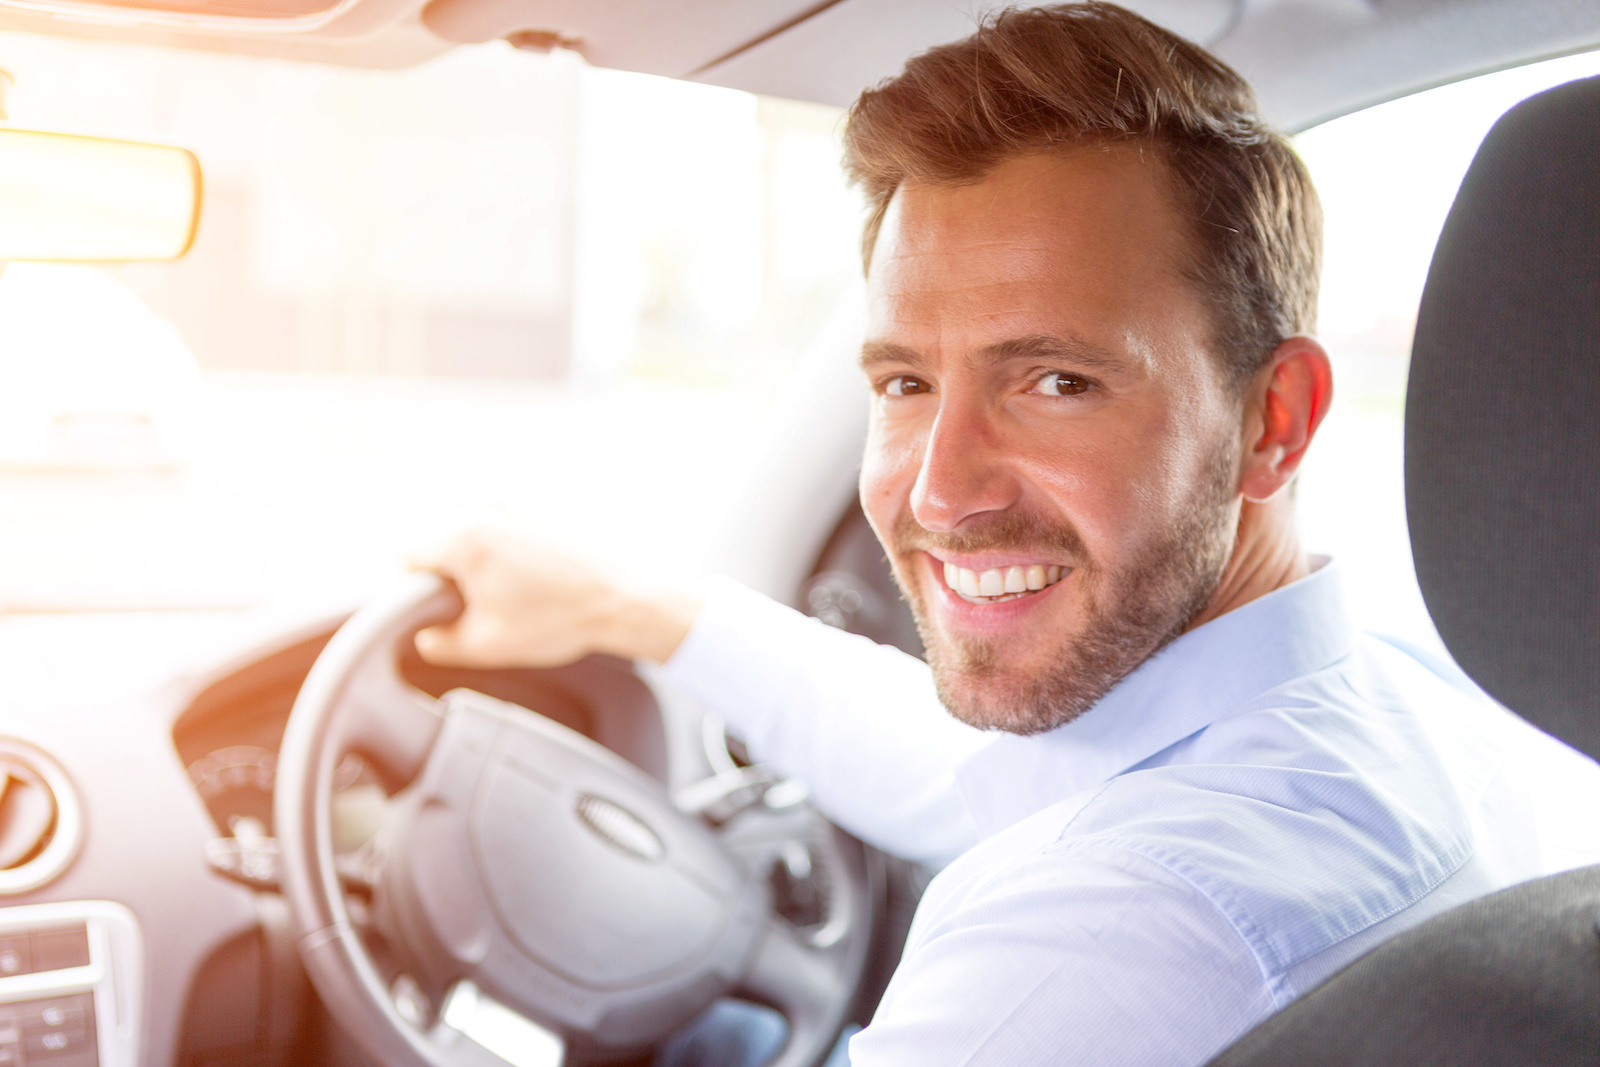 Man driving away his new car with the best car finance deal